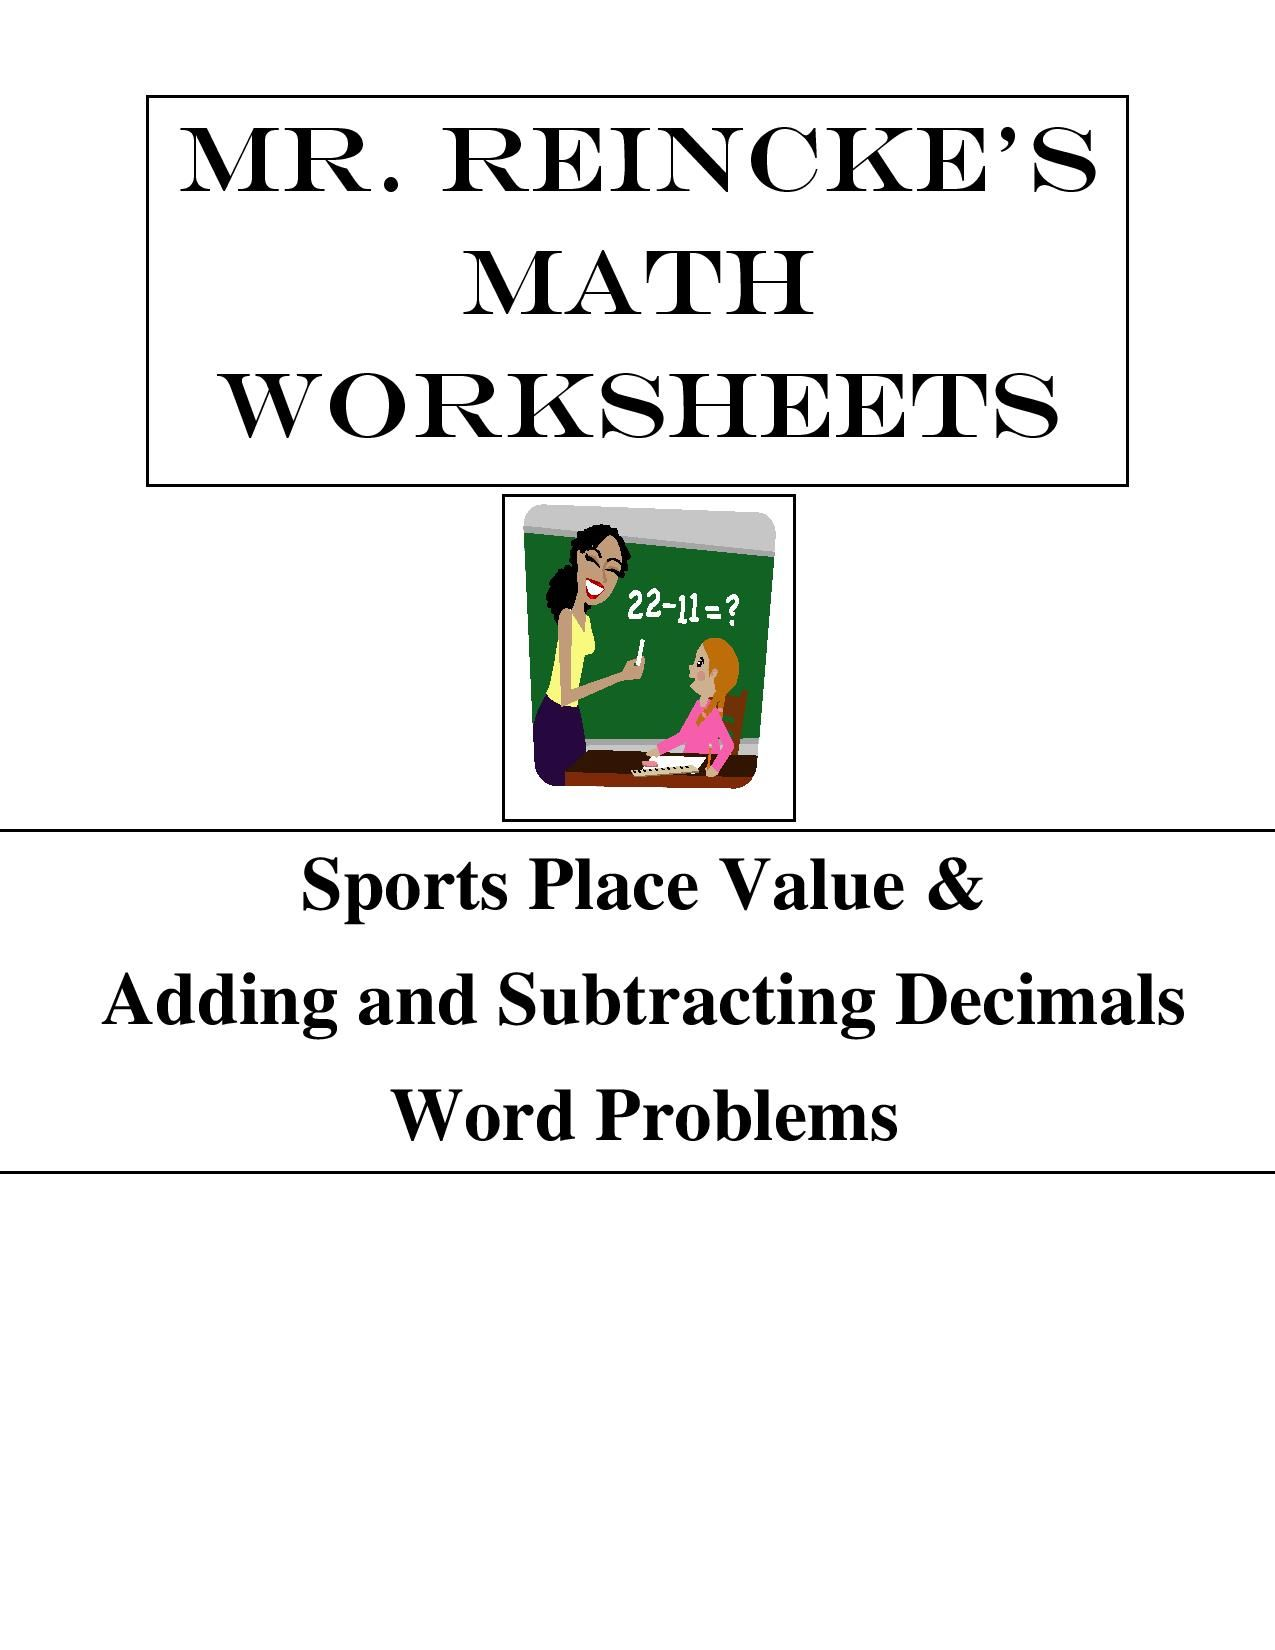 The Document Contains 3 Place Value Worksheets Word Standard Expanded There Are Four Worksheets On Adding And Sub Word Problems Decimal Word Problems Math